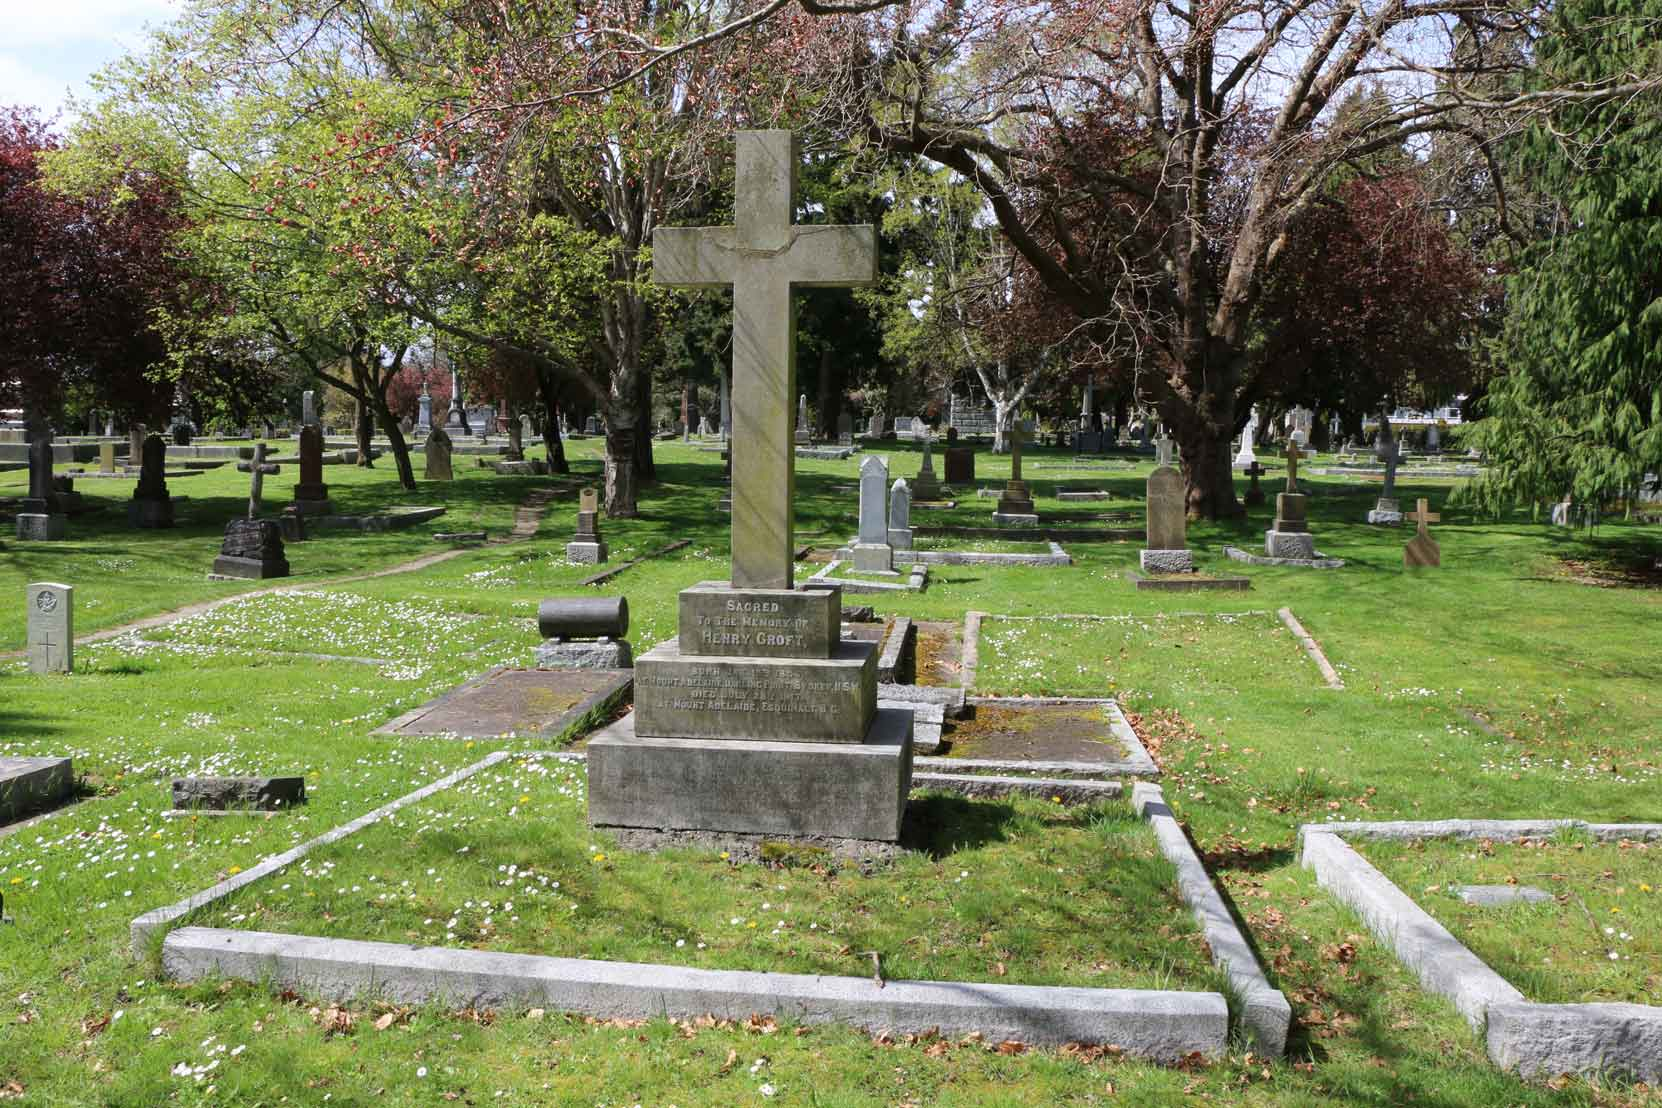 Henry Croft grave, Ross Bay Cemetery, Victoria, B.C. (photo by Temple Lodge No. 33 Historian)